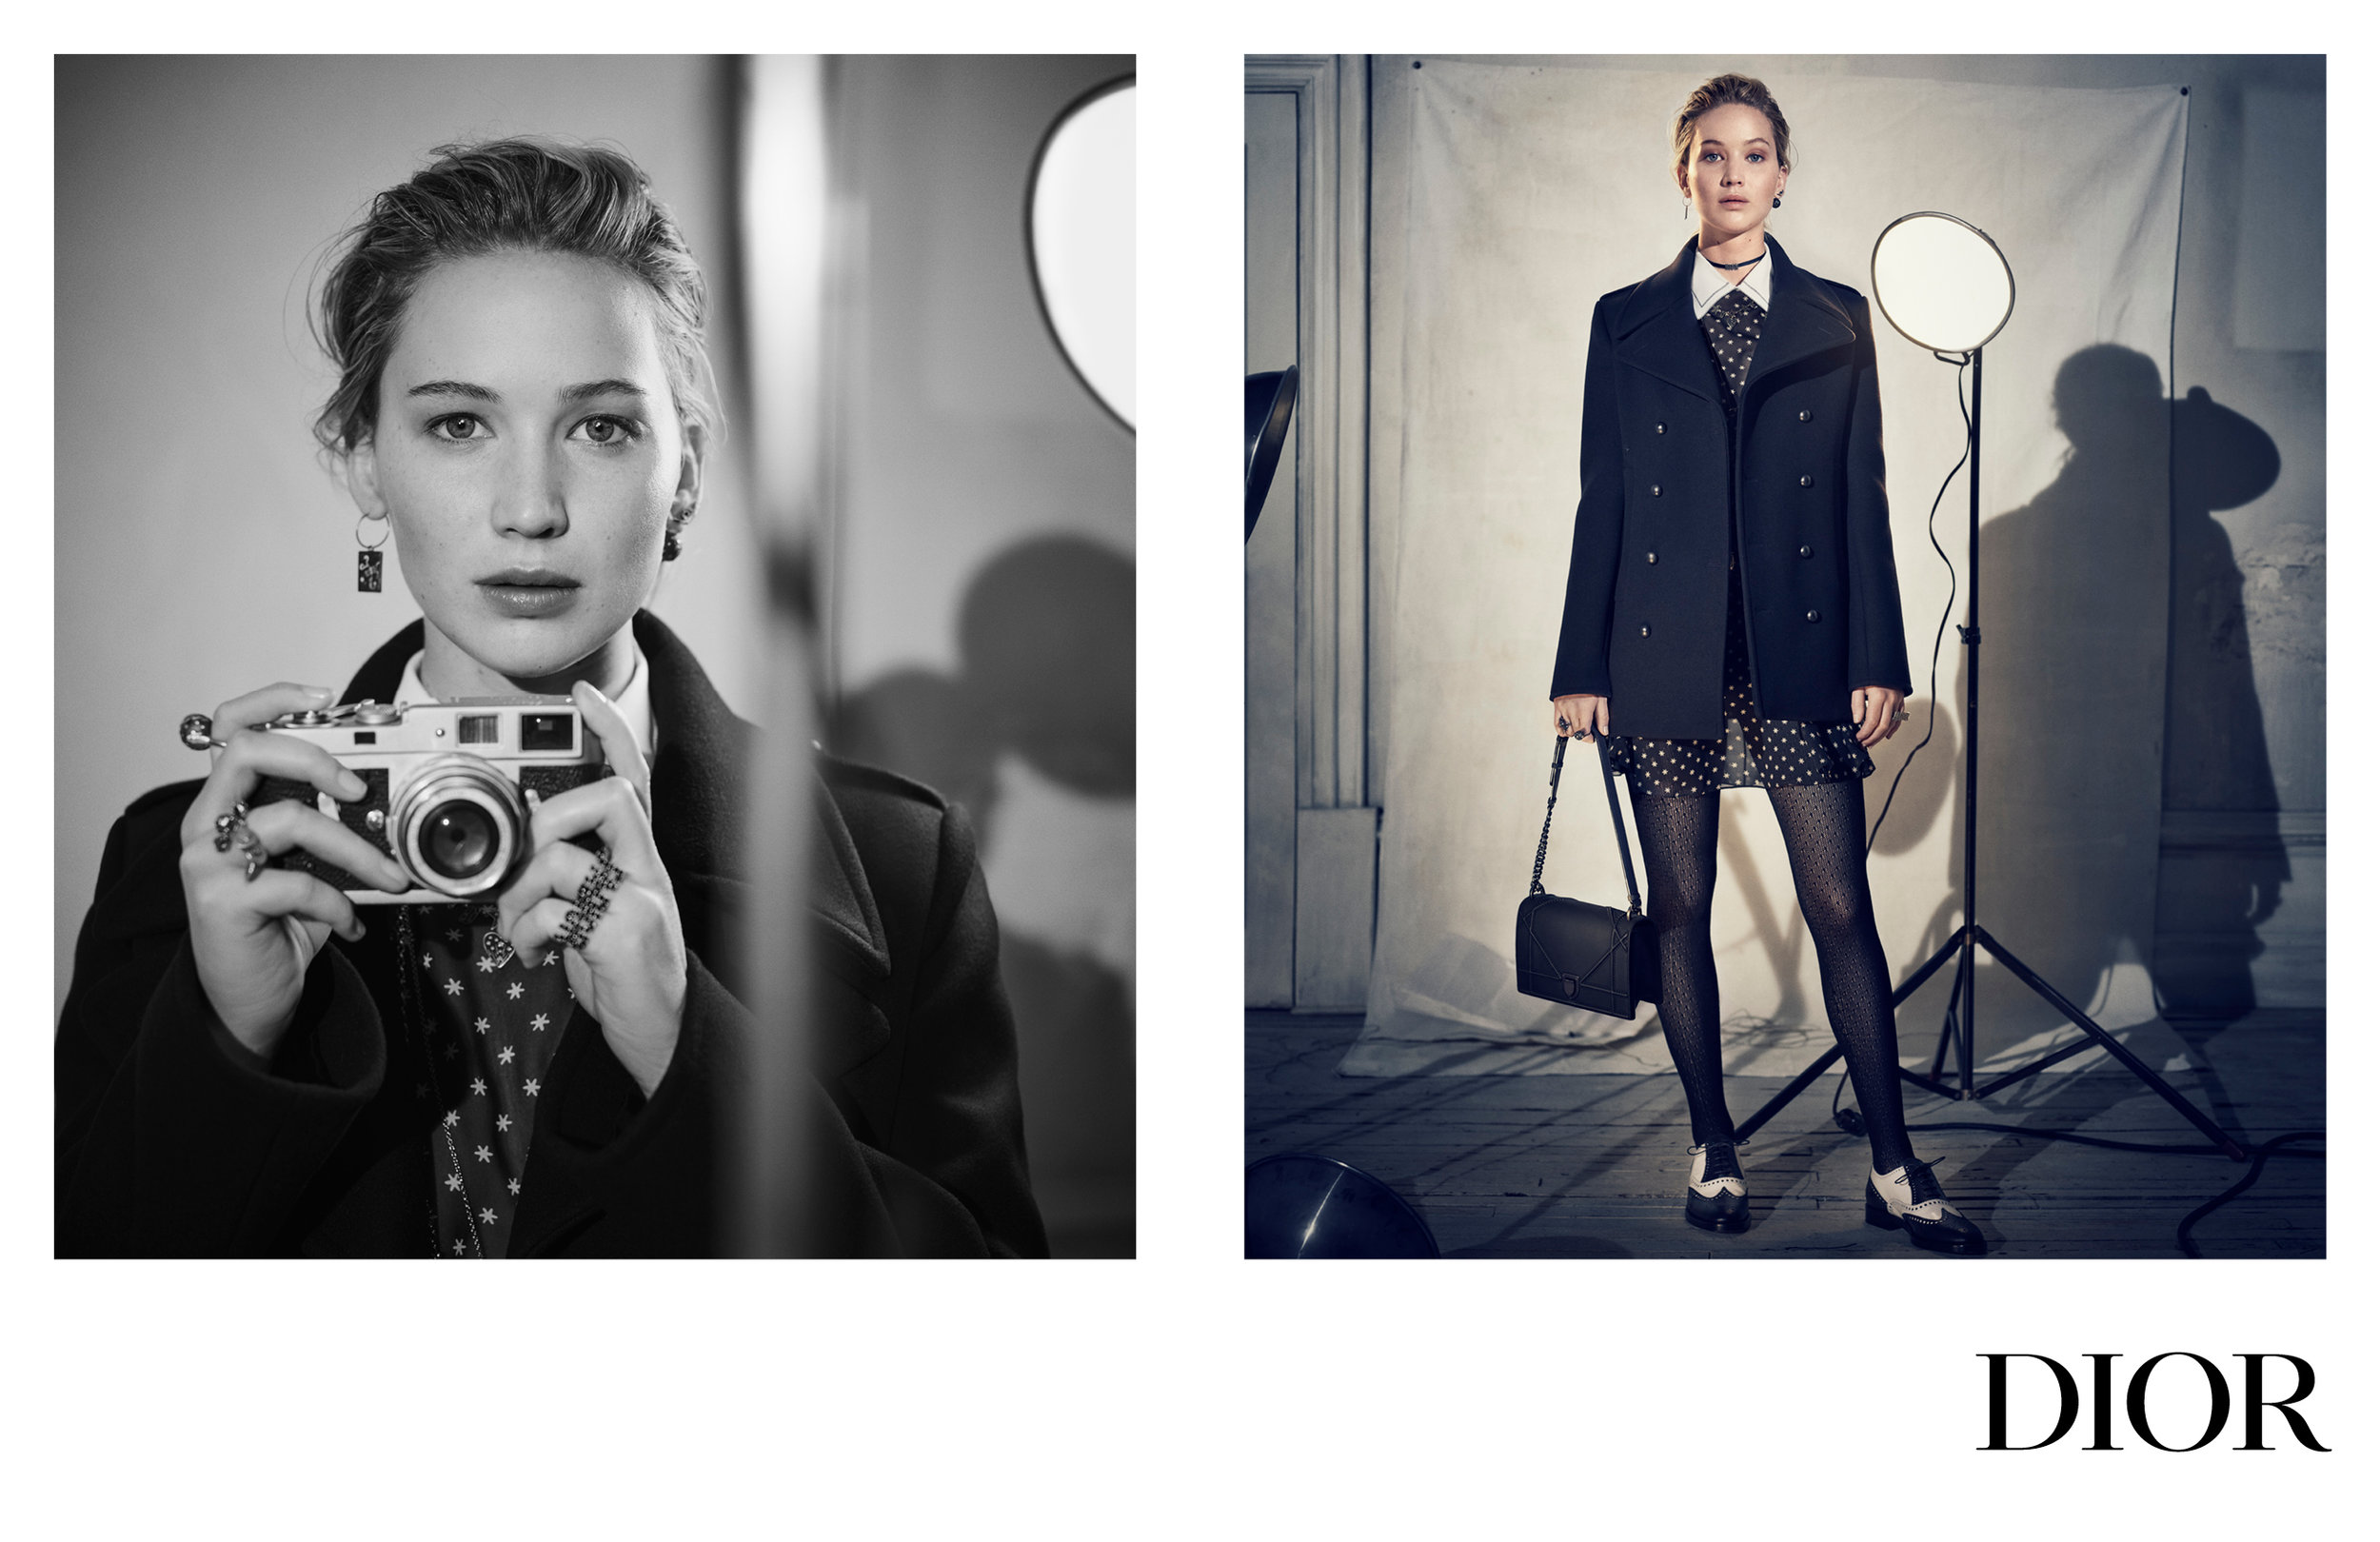 180509_Dior JL_PF18_Layouts_Shot07B_DPS.jpg